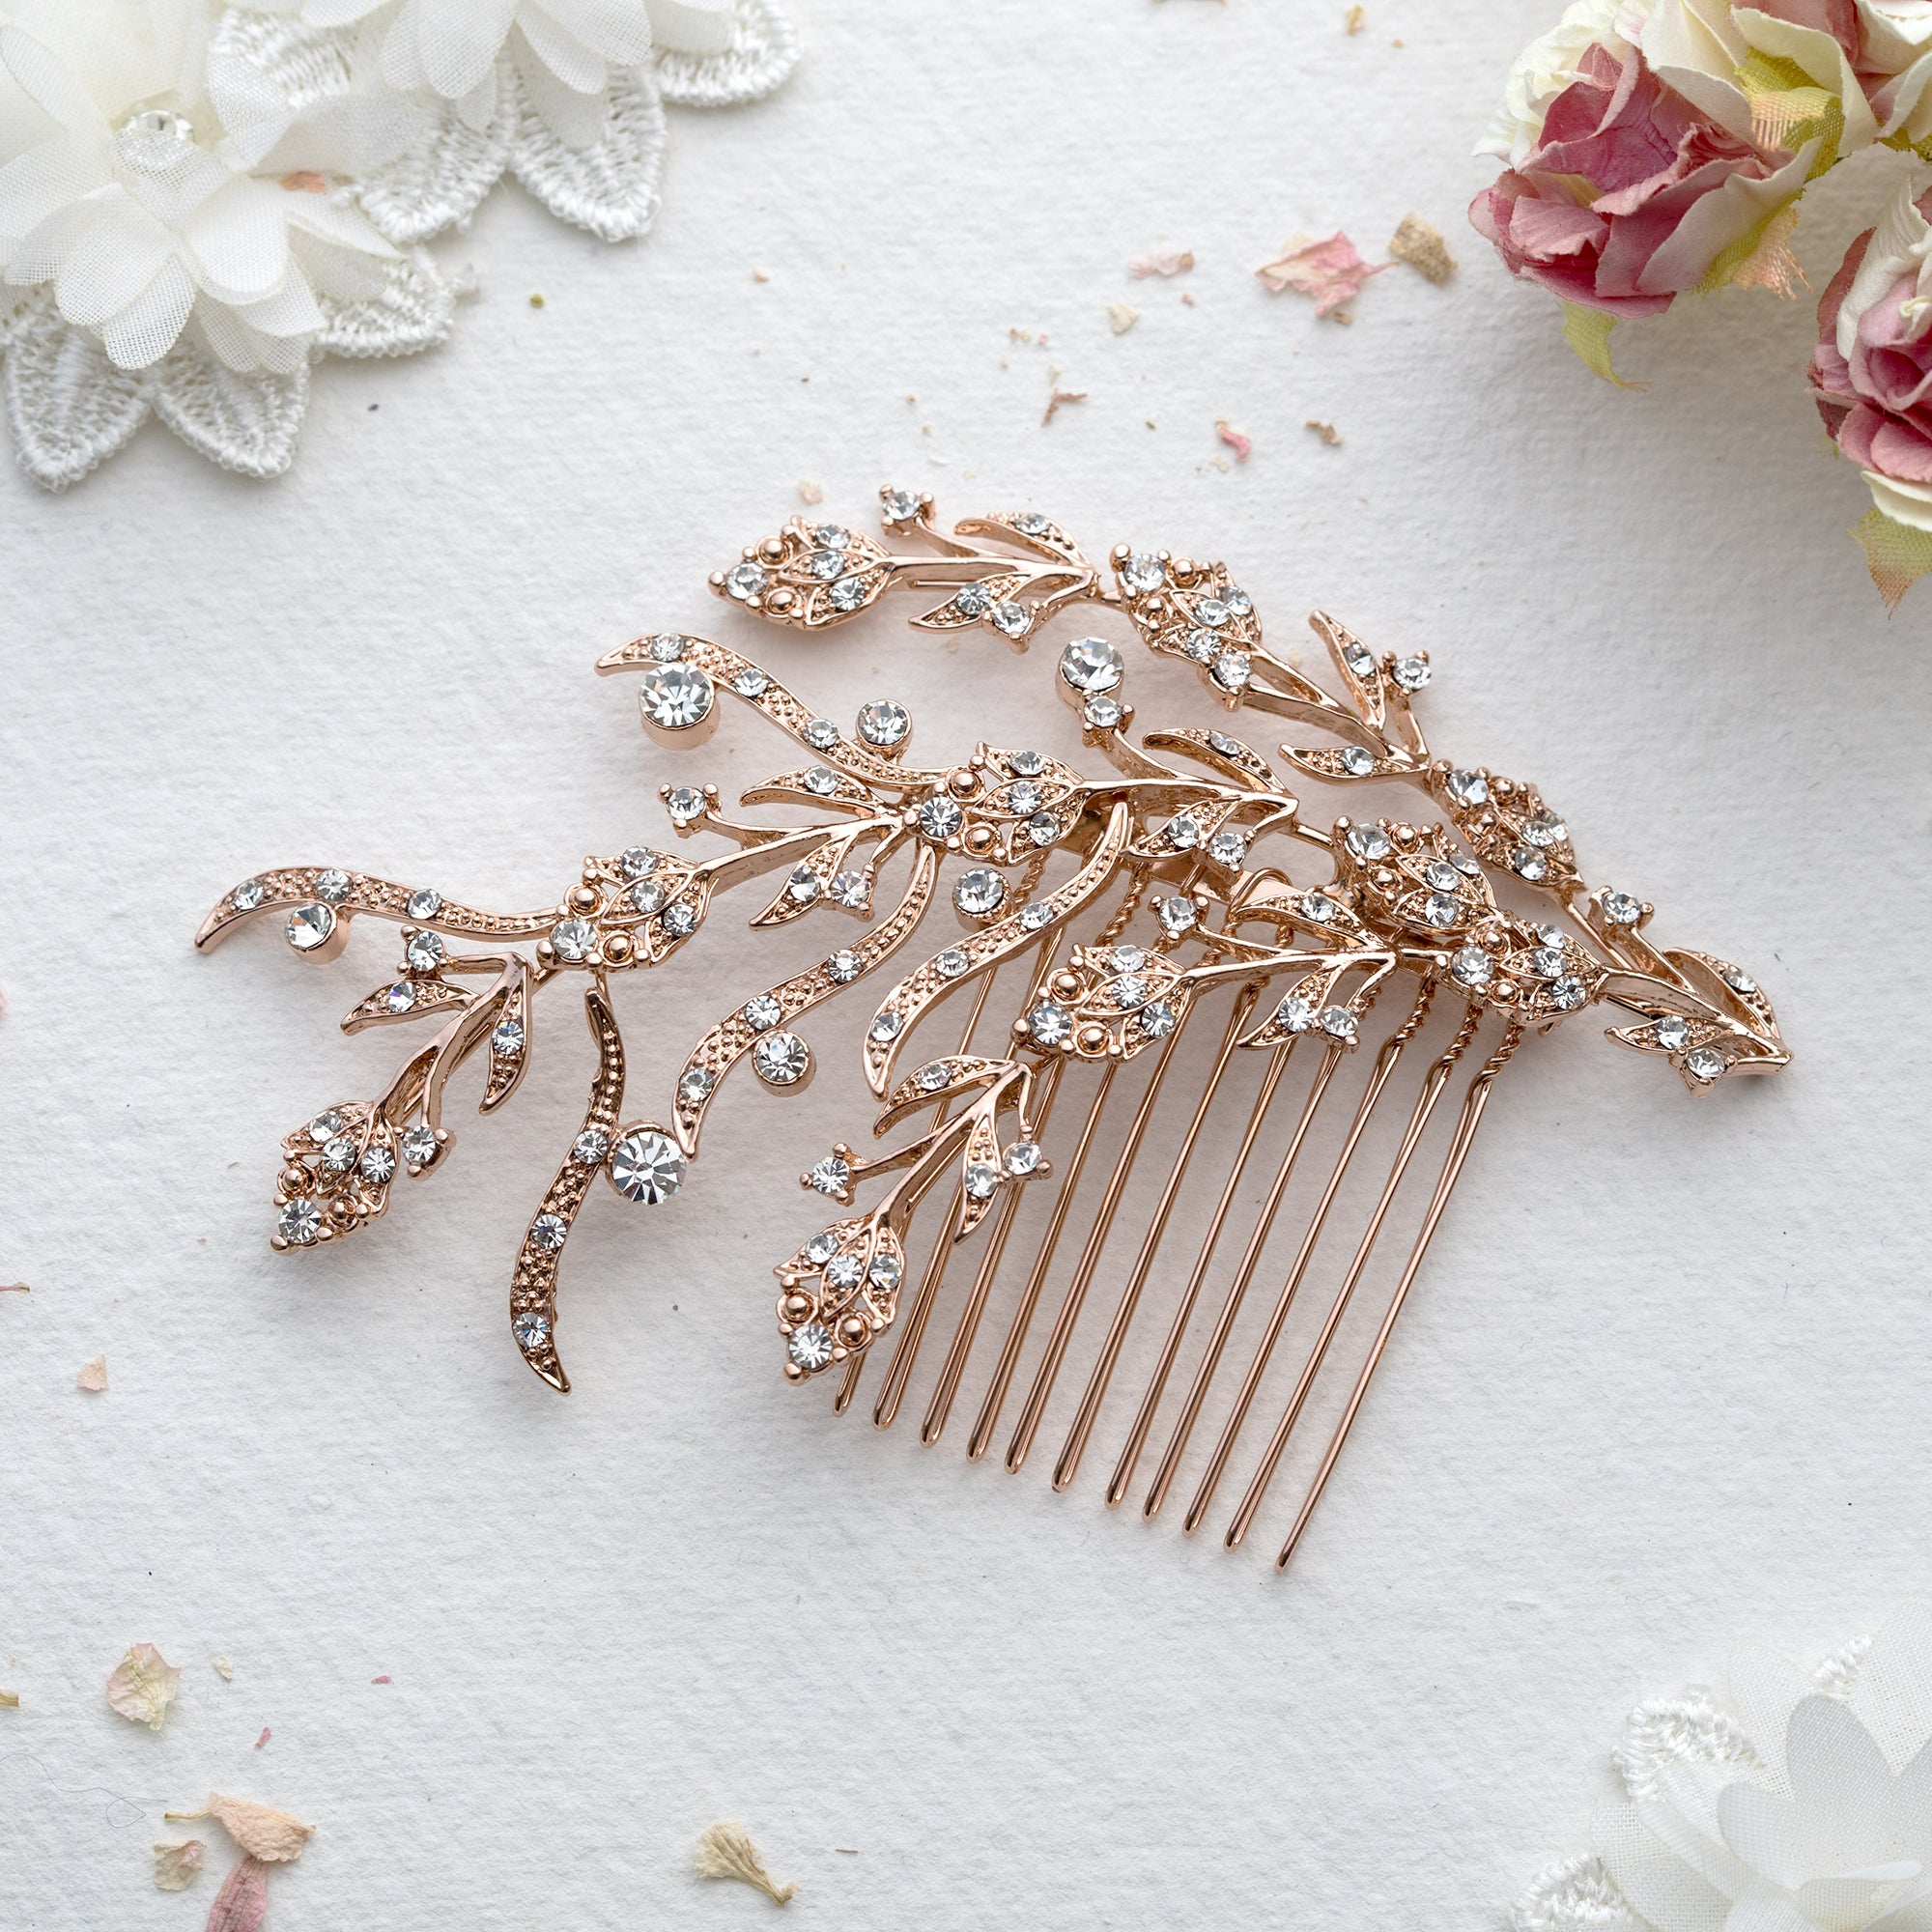 Luna crystal and silver hair comb